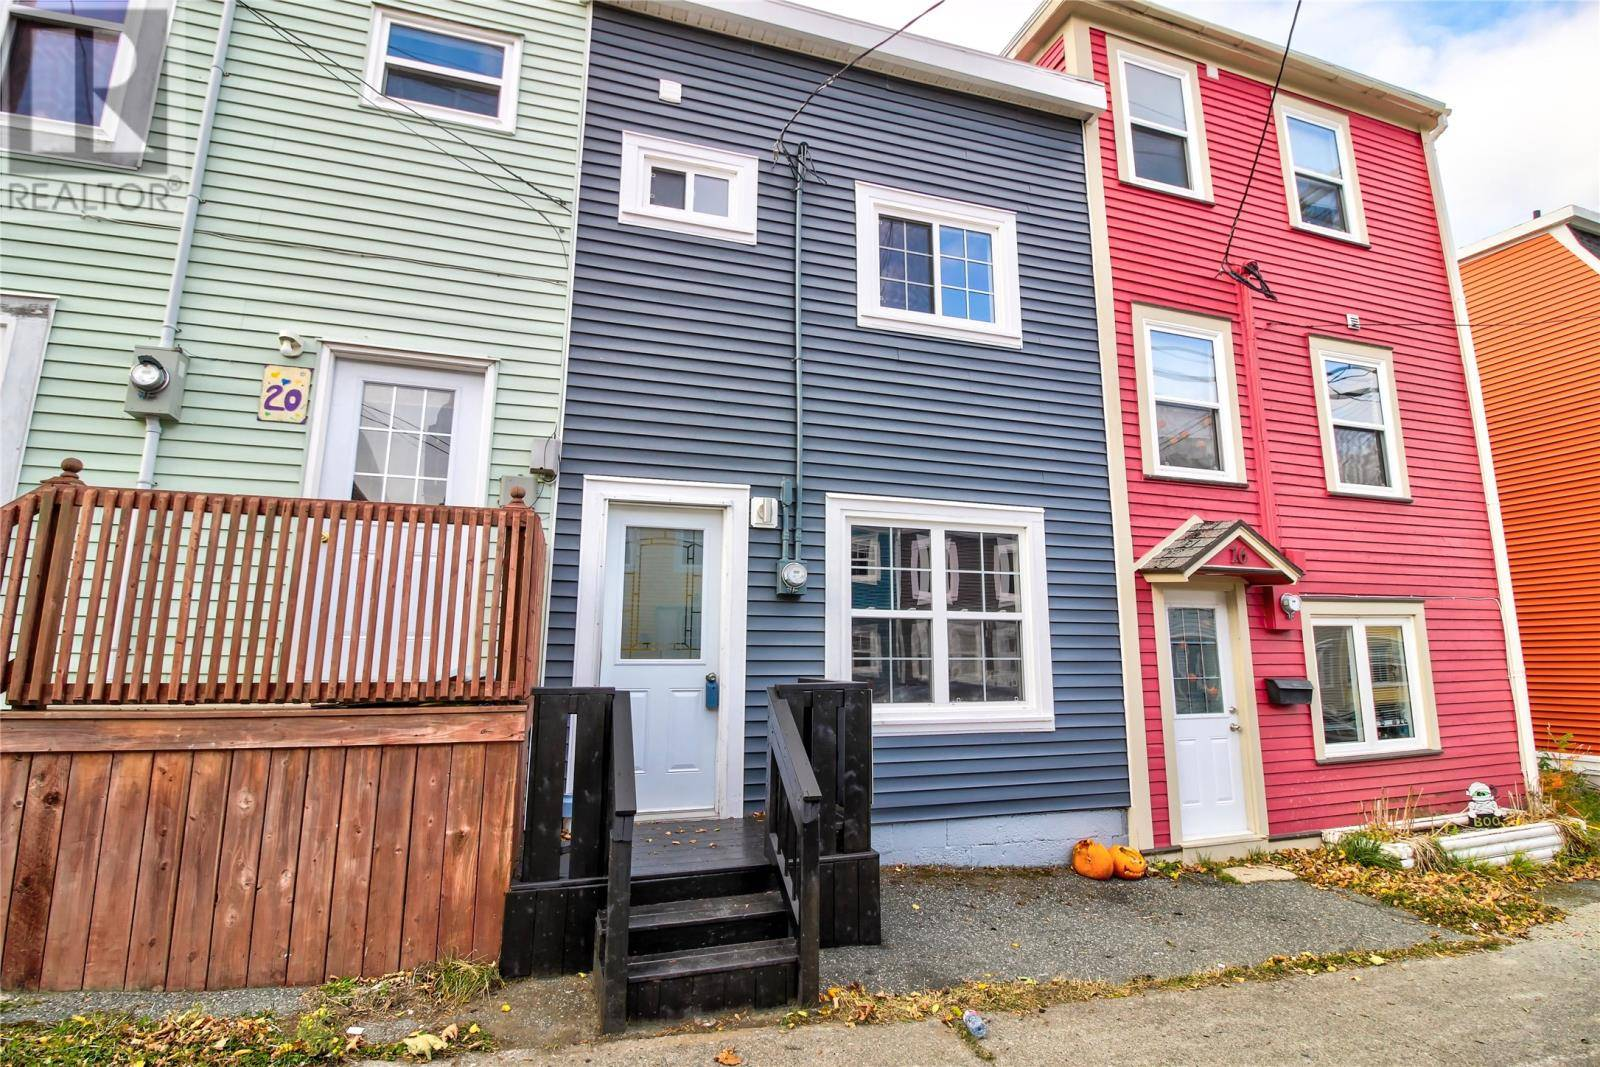 House for sale at 18 Mulock St St. John's Newfoundland - MLS: 1205599